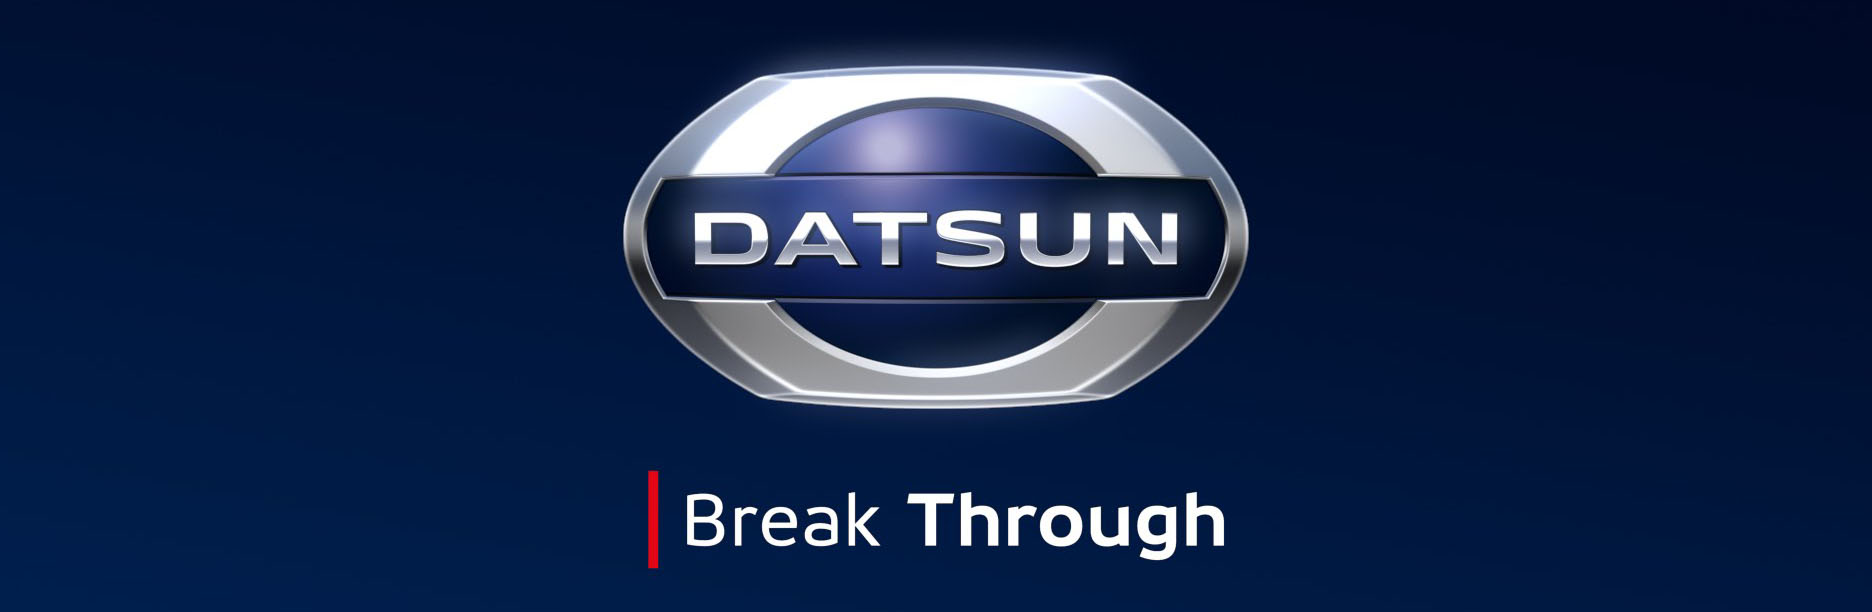 Ghandhara Nissan Likely to Resume Datsun Car Production After Brownfield Status 1